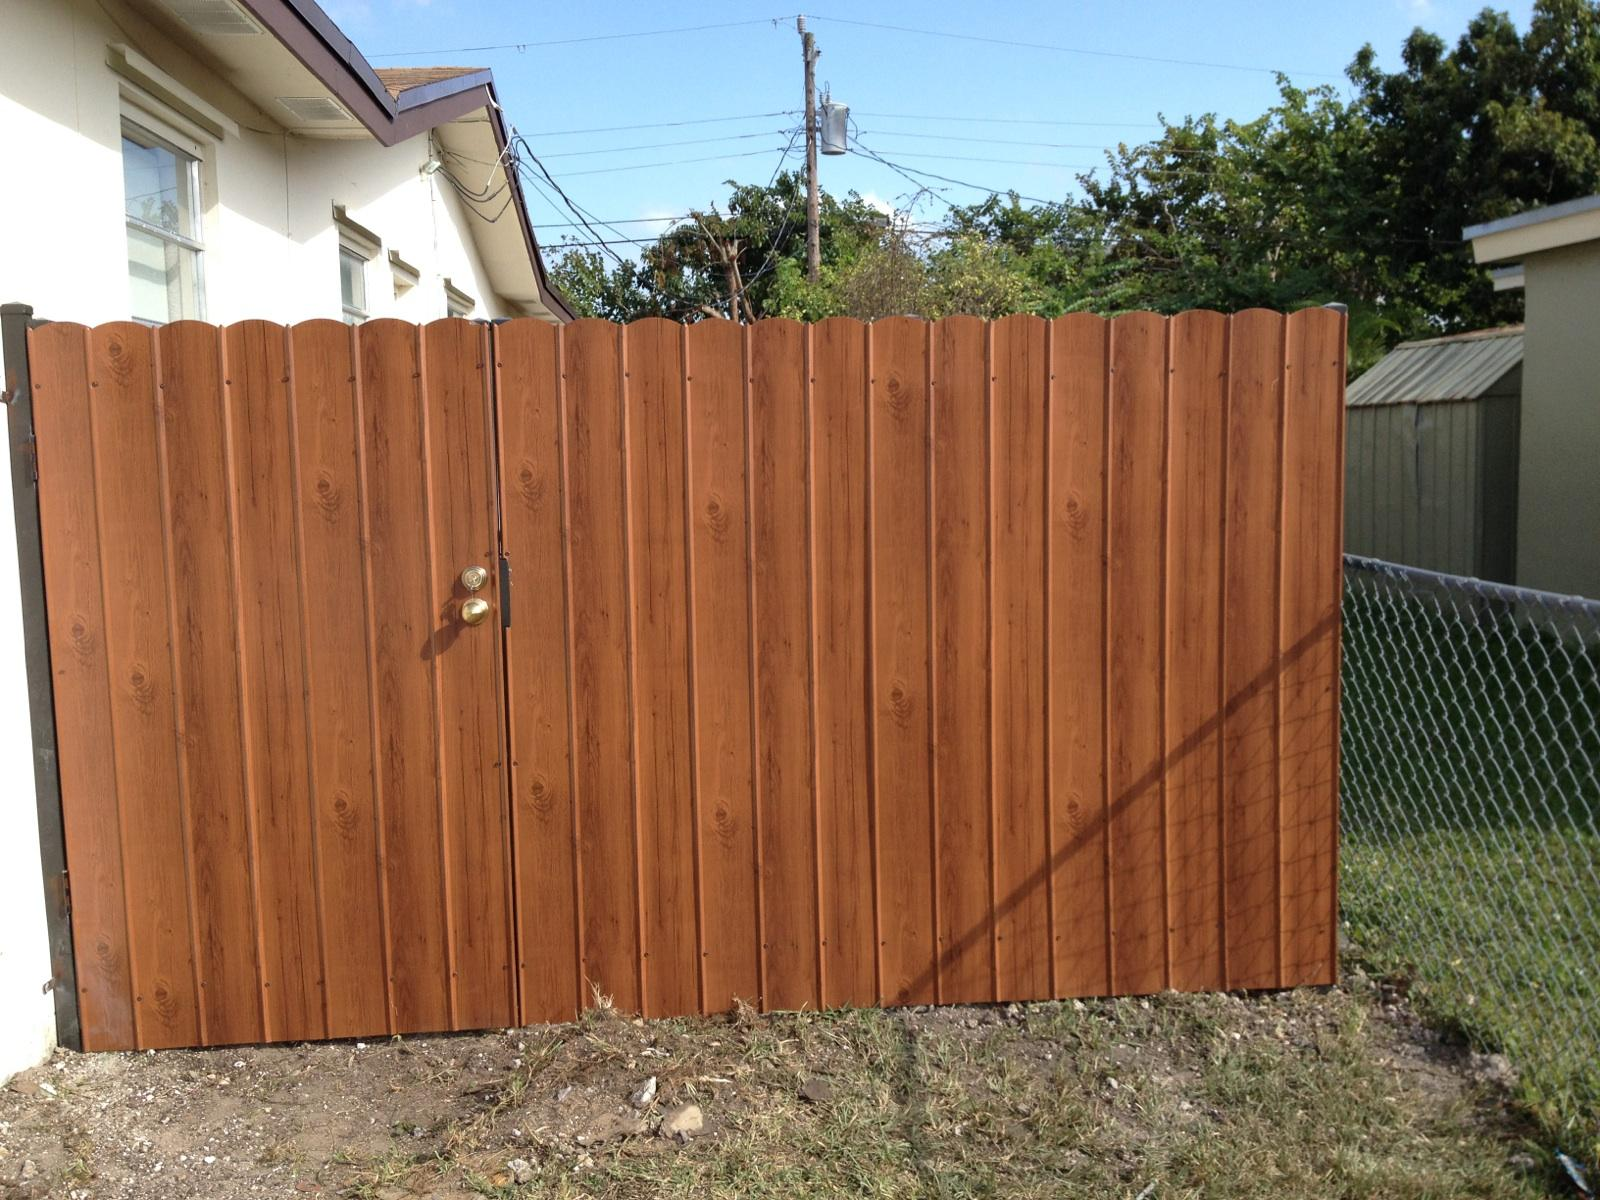 Outdoor privacy fence garden slot galvanized corrugated for Outdoor patio privacy fence